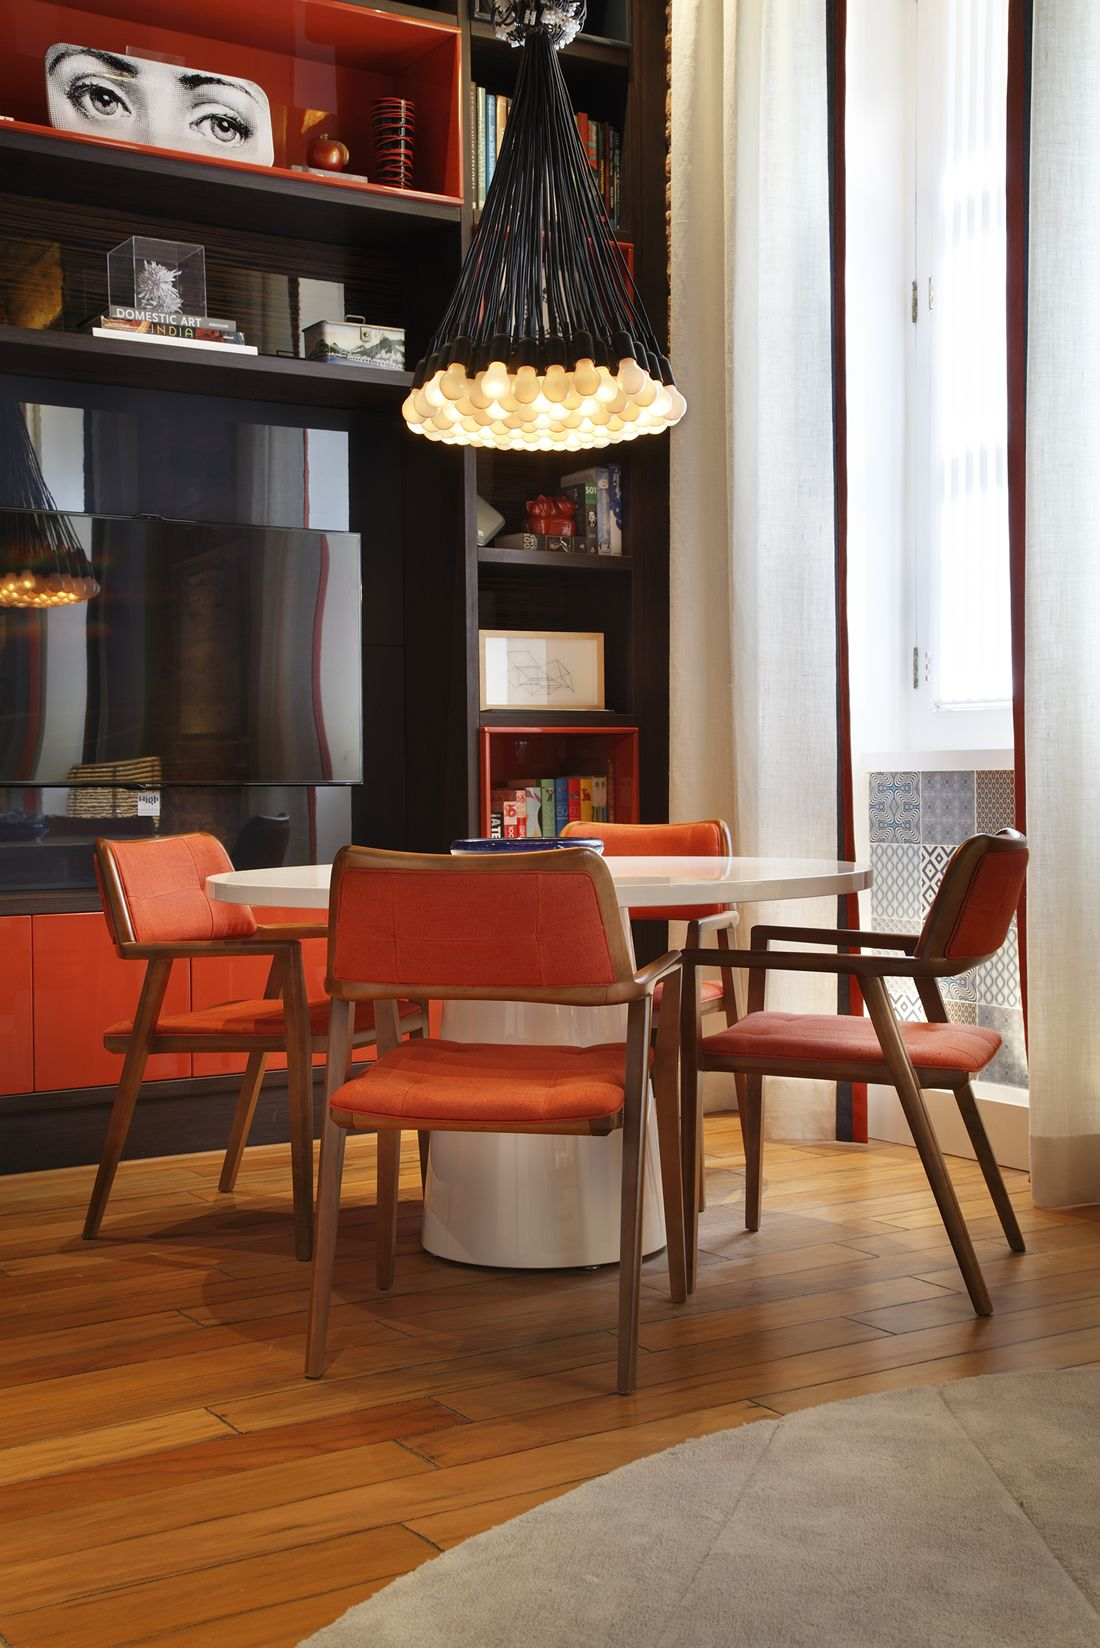 Mid century modern dining room. Great use of orange and black.